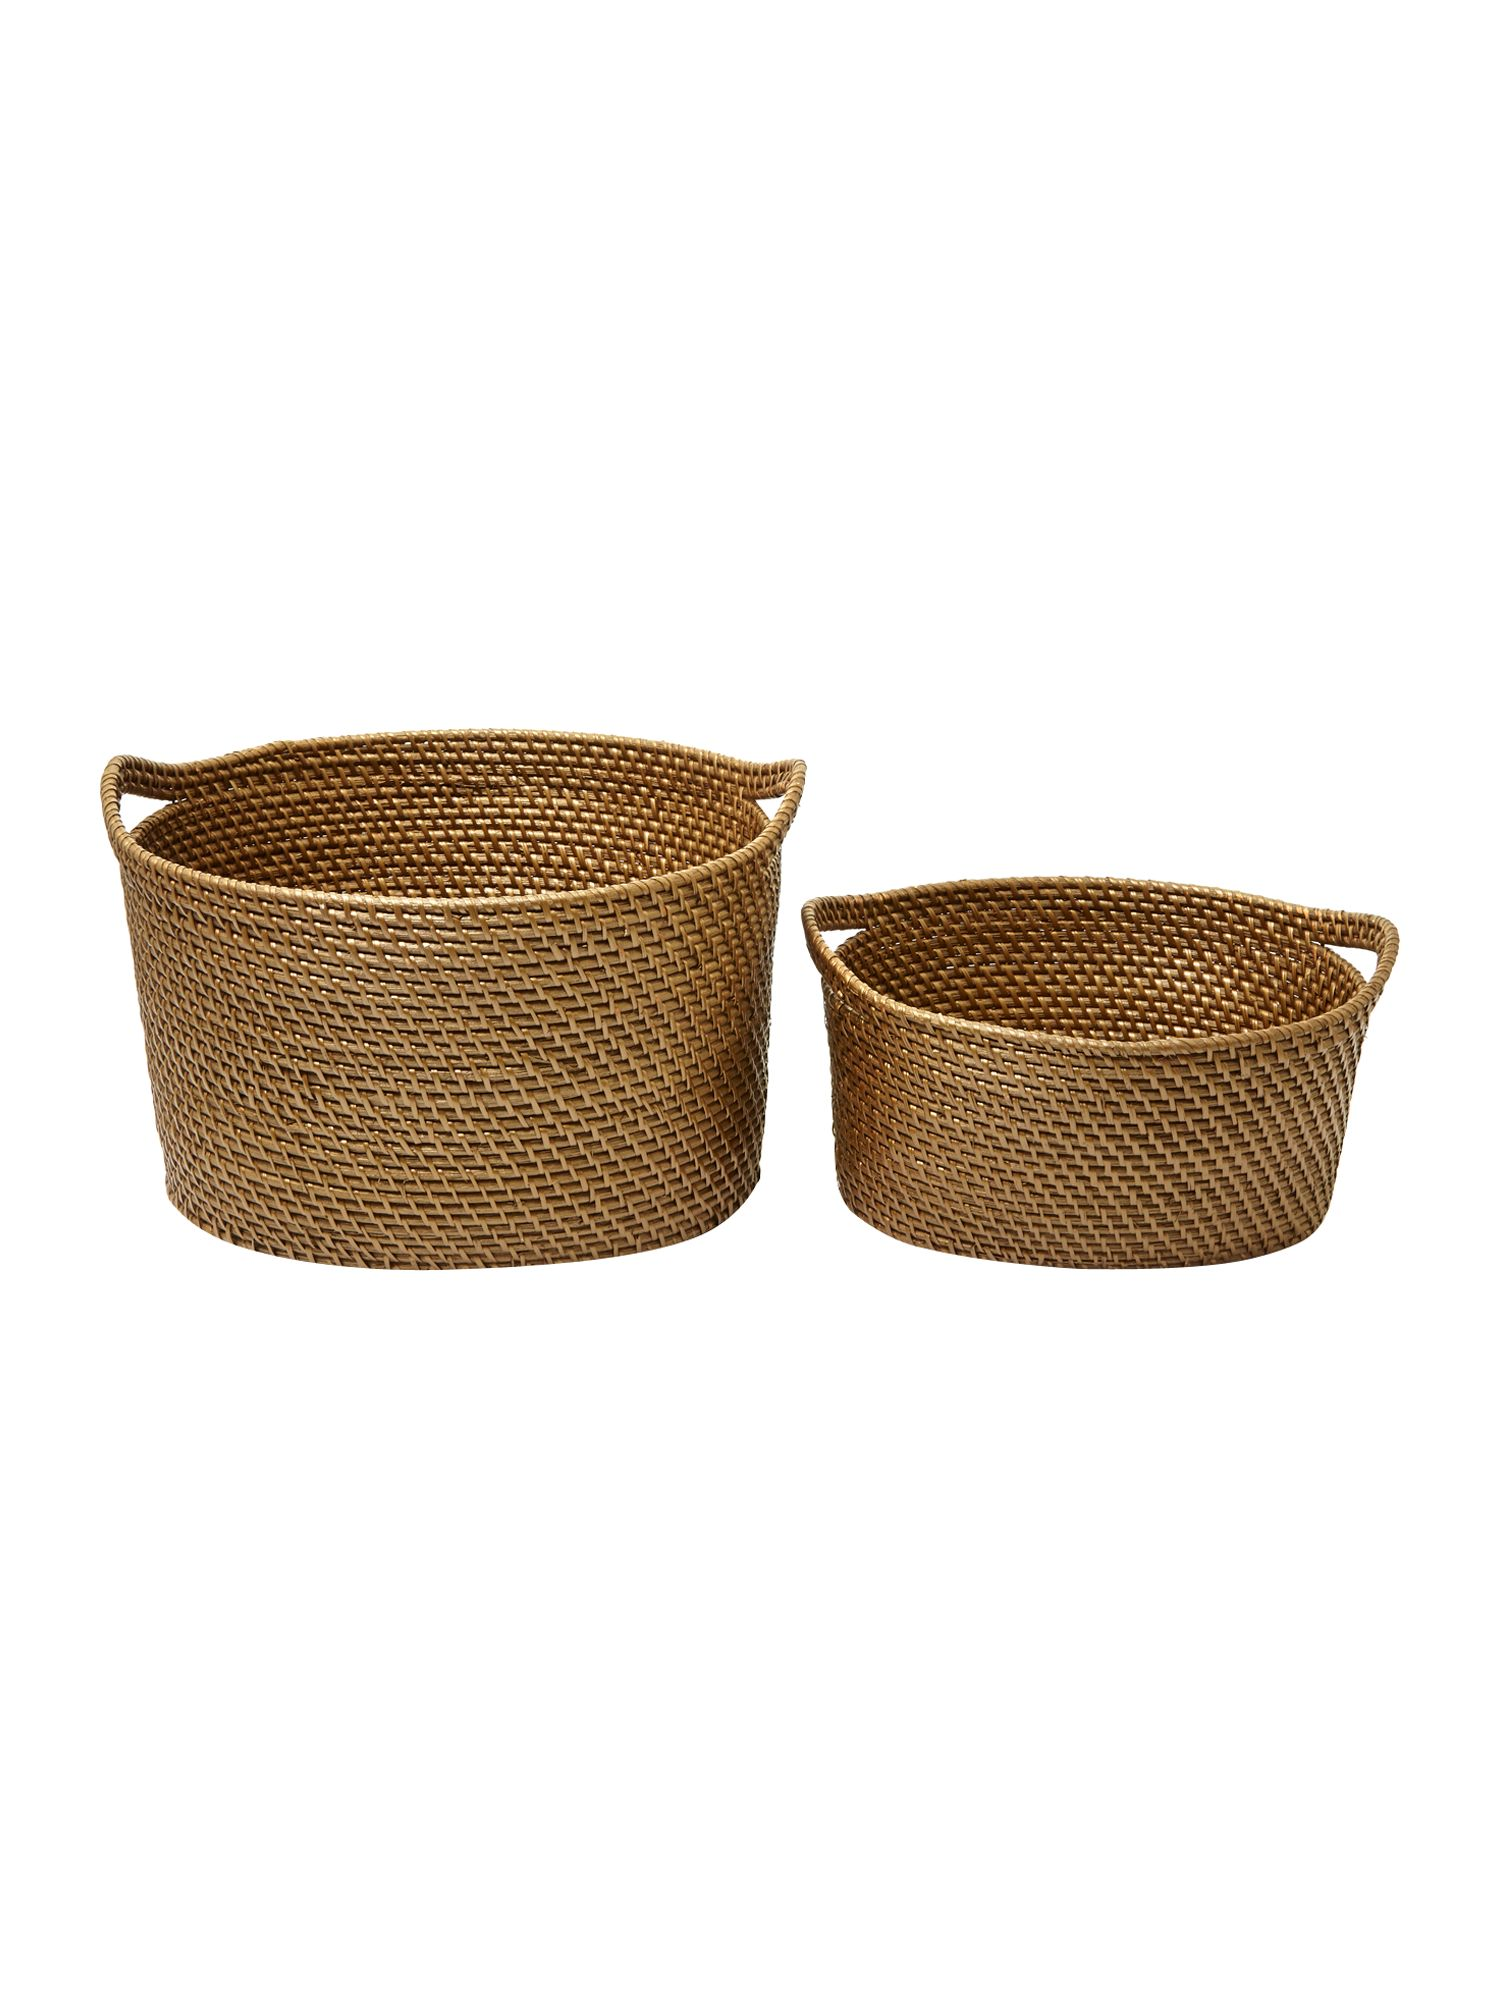 Set of 2 oval rattan baskets, bronze